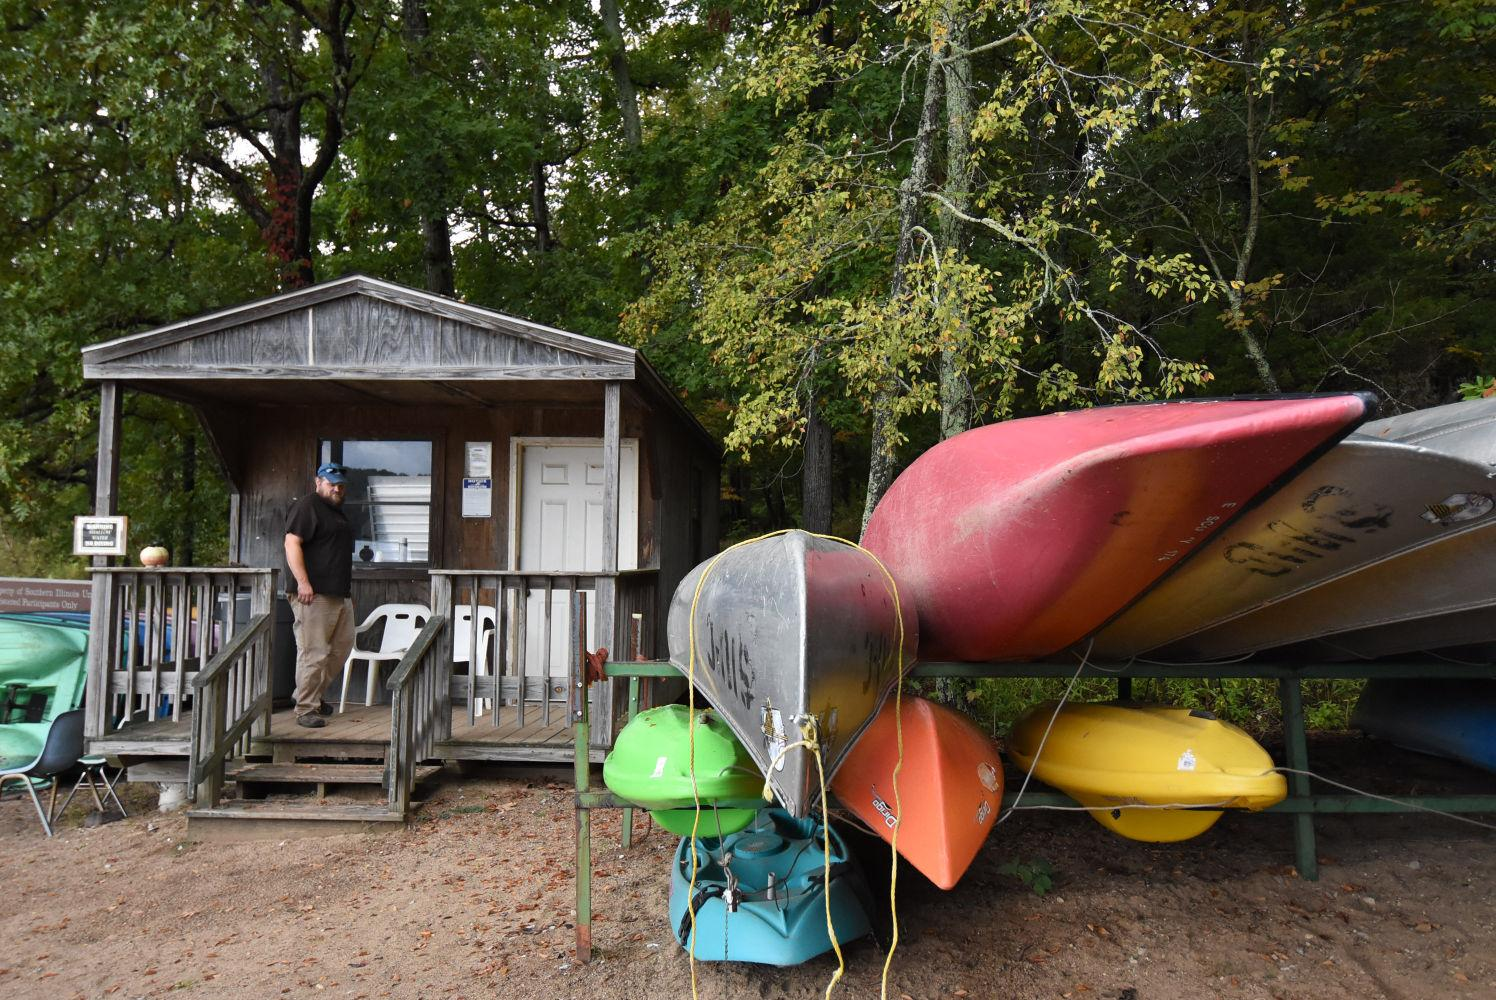 Steve Gariepy, the event organizer for the first two Breaking the Surface paddle events, descends the steps of a shed Tuesday, September 29, 2015, near the beach at Touch of Nature Environmental Center in Makanda. He said he enjoys taking the 34-foot Voyageur canoe on the lake because it has room for many different types of people. He said everyone in the boat has to work together to paddle it.